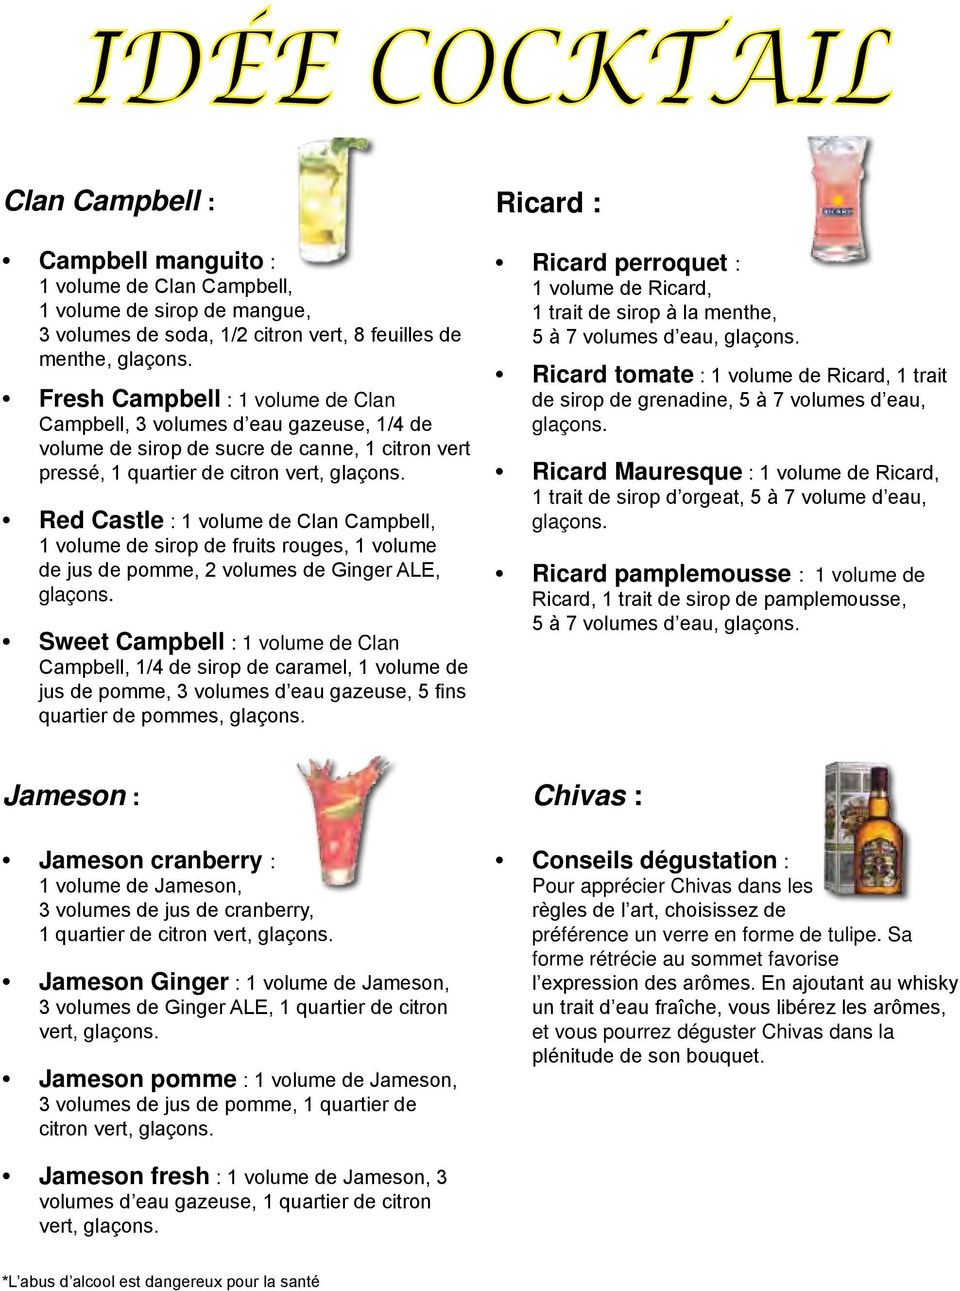 Red Castle : 1 volume de Clan Campbell, 1 volume de sirop de fruits rouges, 1 volume de jus de pomme, 2 volumes de Ginger ALE, glaçons.